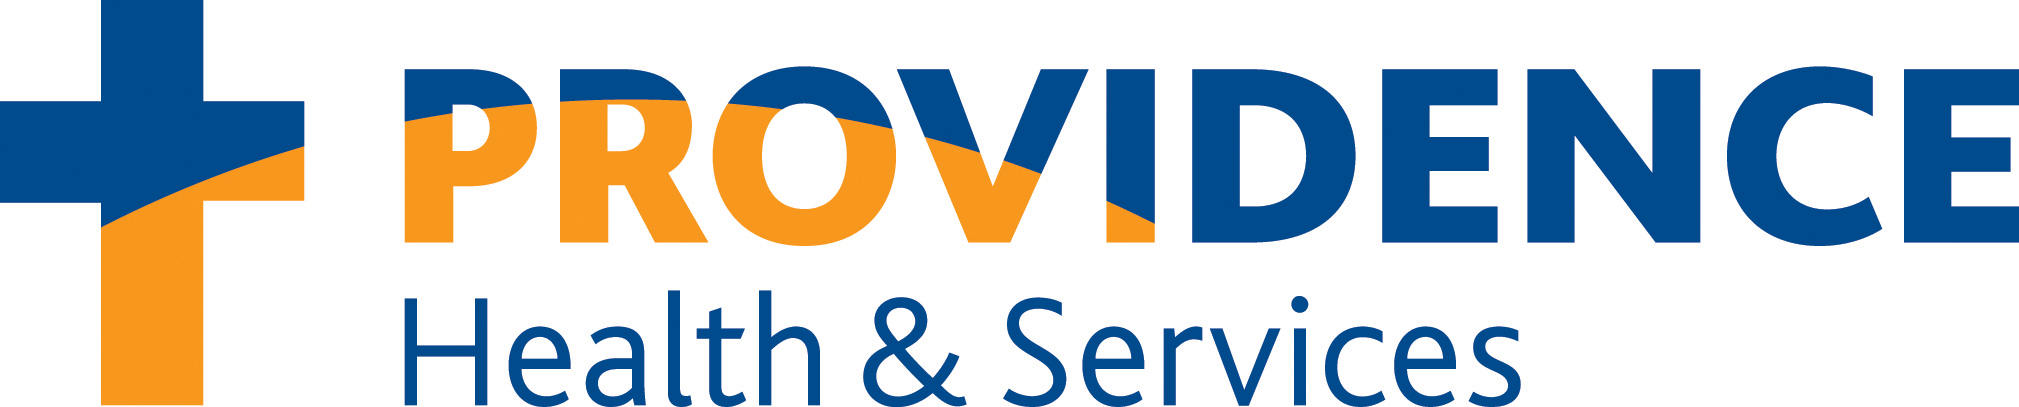 Hole Sponsors - Providence Health & Services - Logo